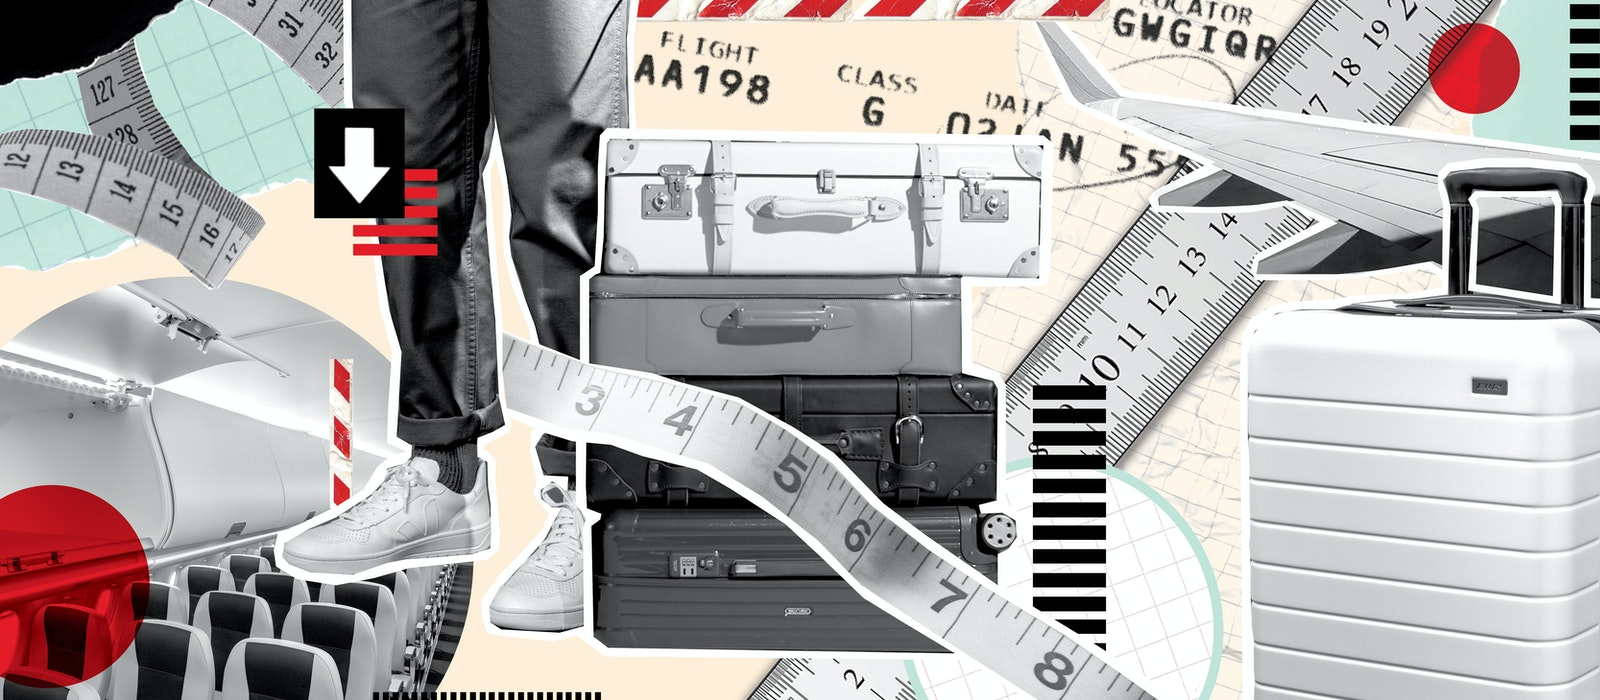 The majority of airlines allow passengers to bring one personal item and one carry-on,'but travelers should always check their airline's website for specific information.